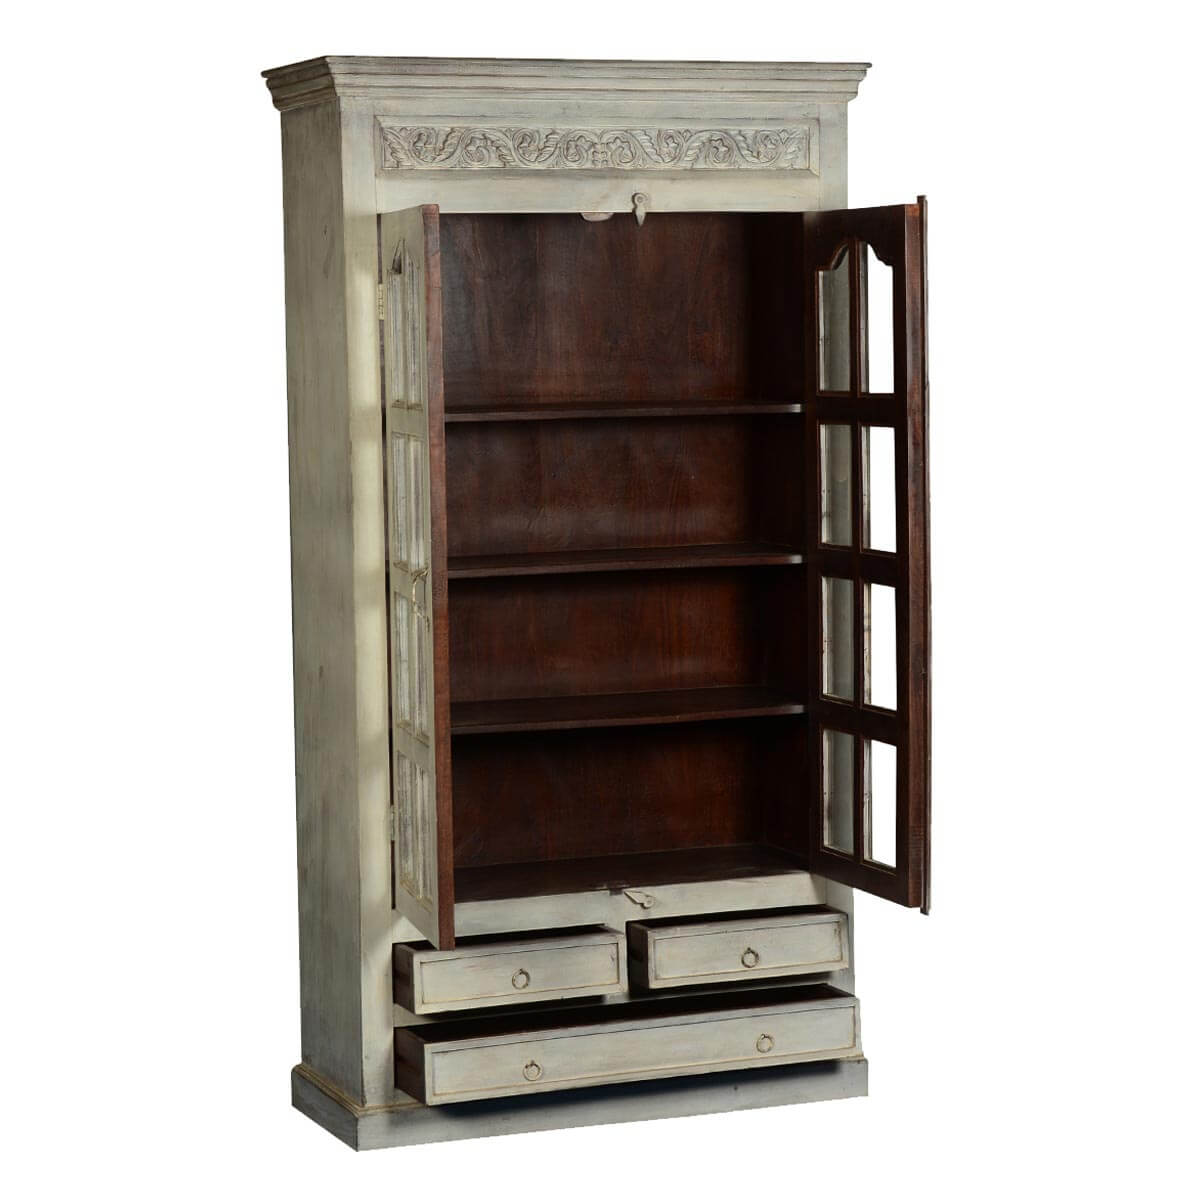 Early Victorian Antique White Mango Wood Display Armoire  : 67116 from sierralivingconcepts.com size 1200 x 1200 jpeg 118kB